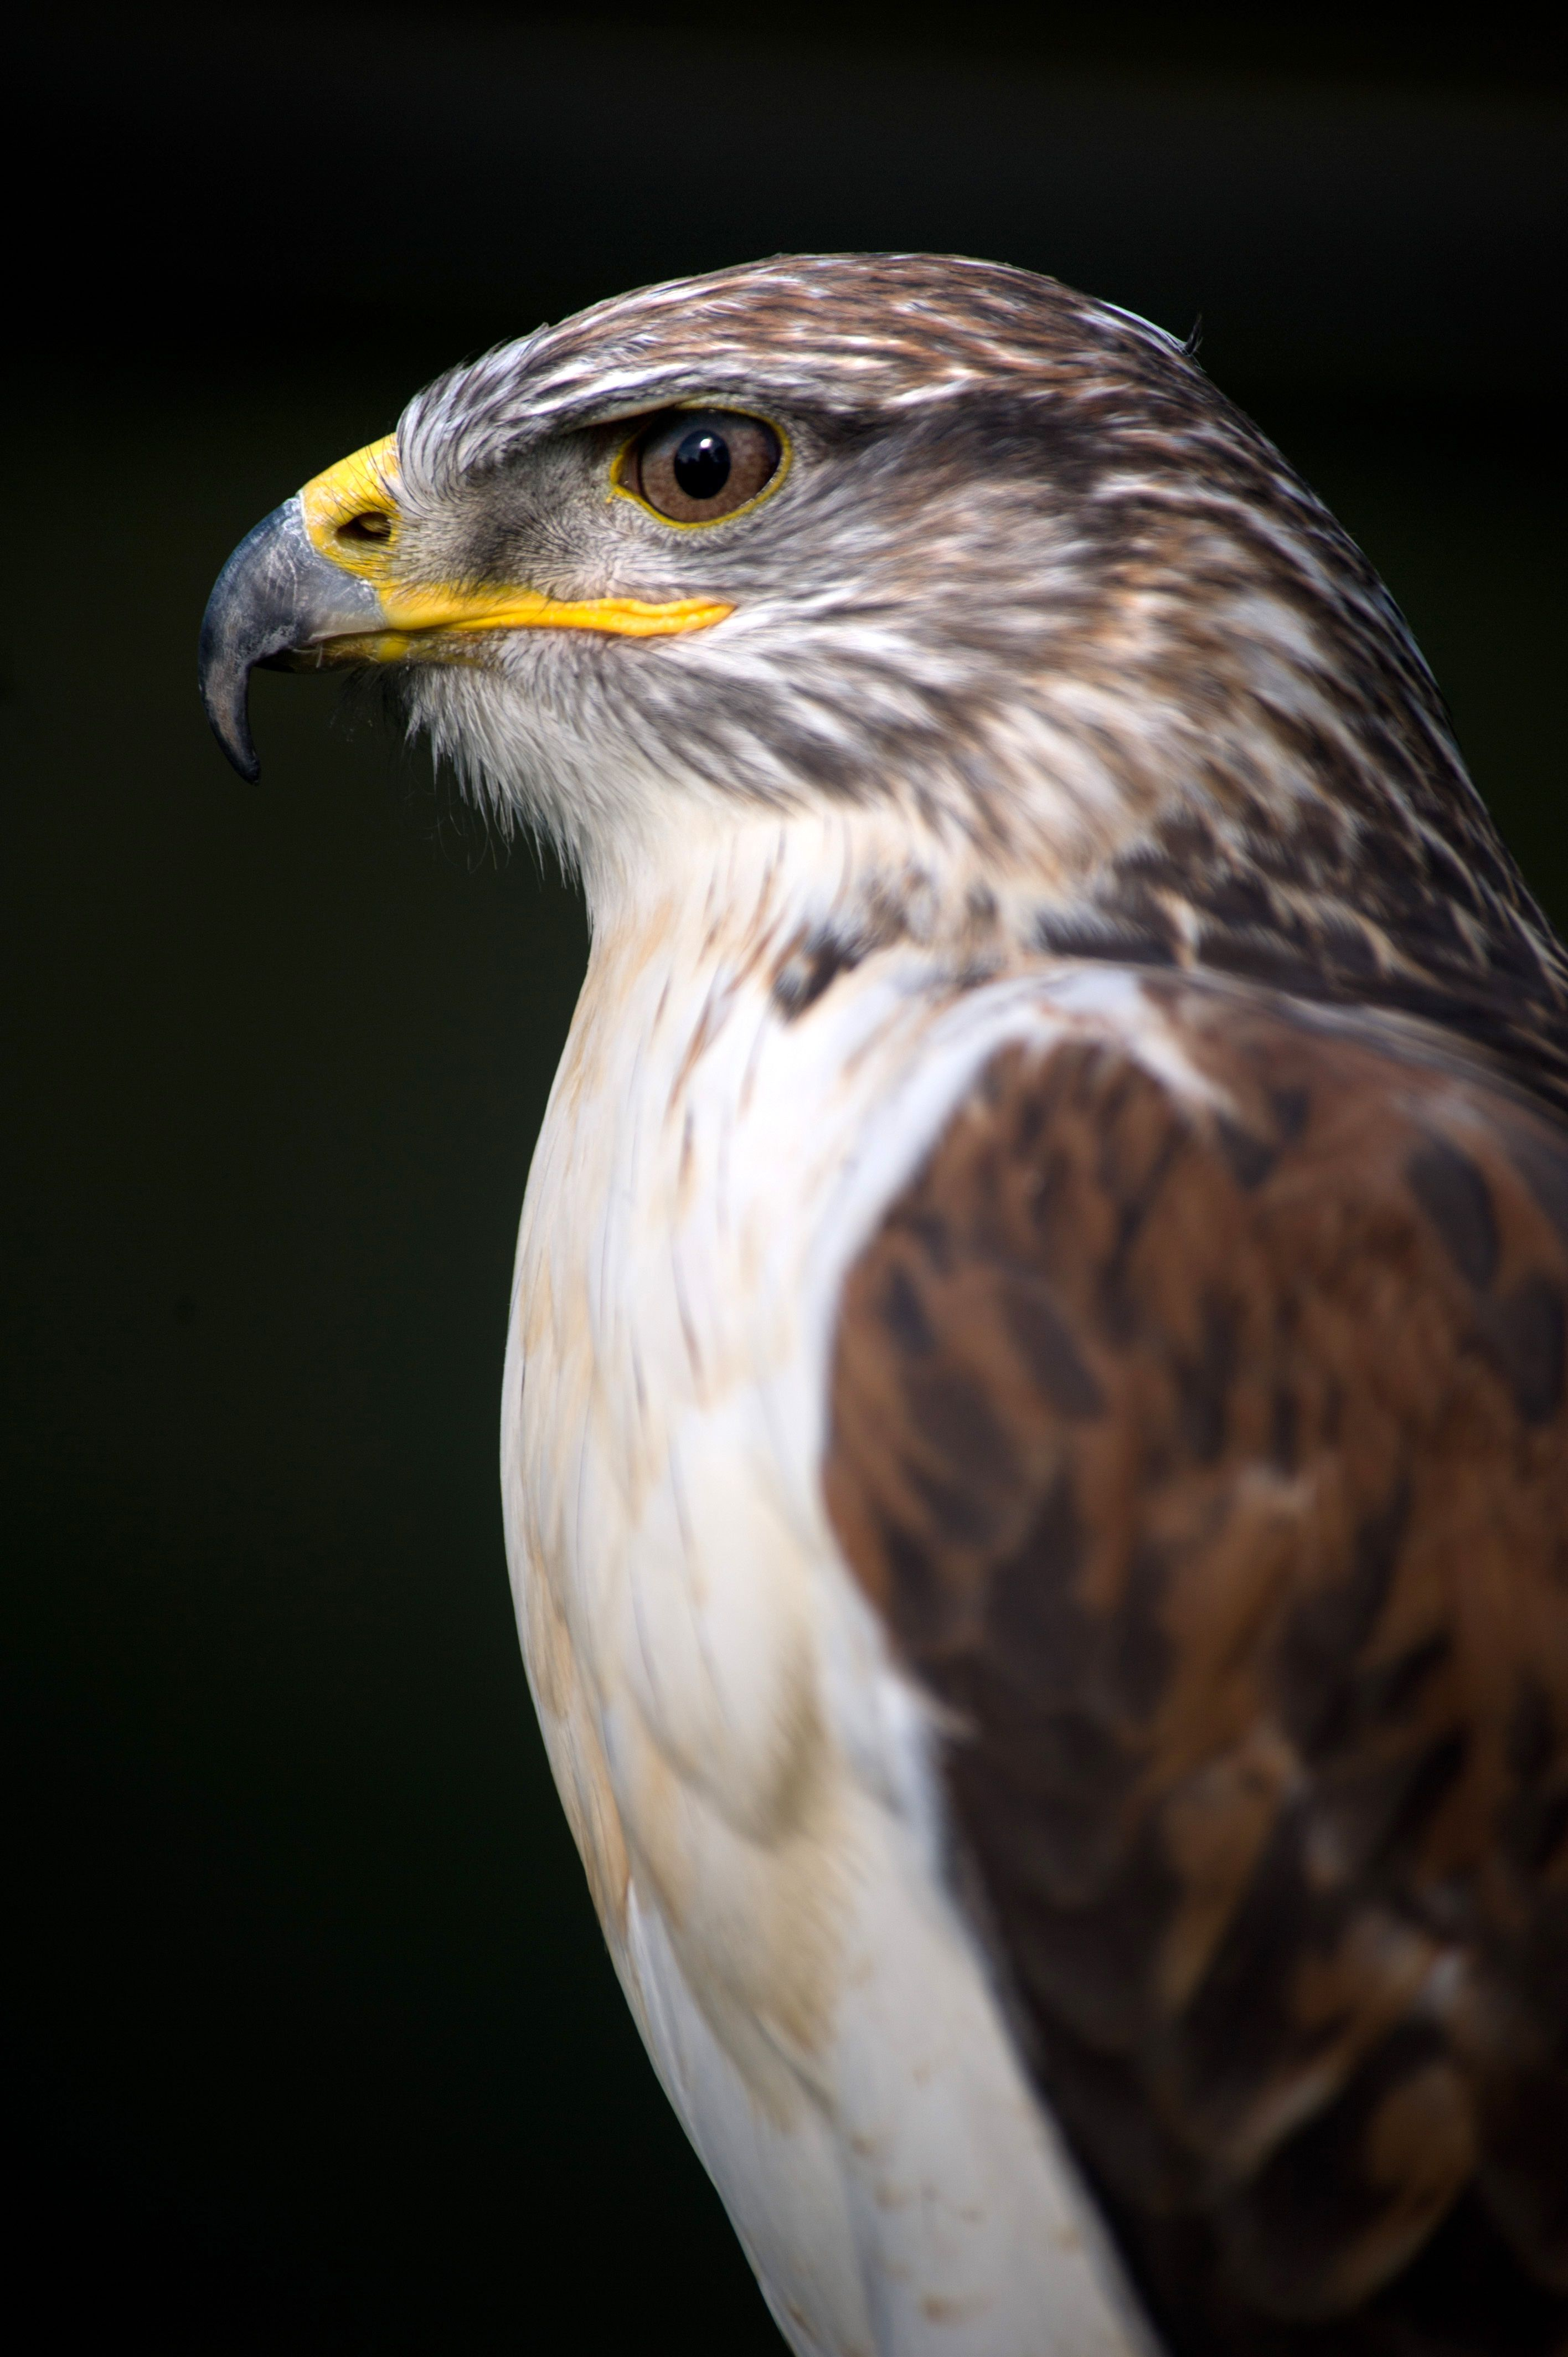 Planning To Go On A Hawk Walk While At Dalhousie Castle In Edinburgh Scotland This June Cool